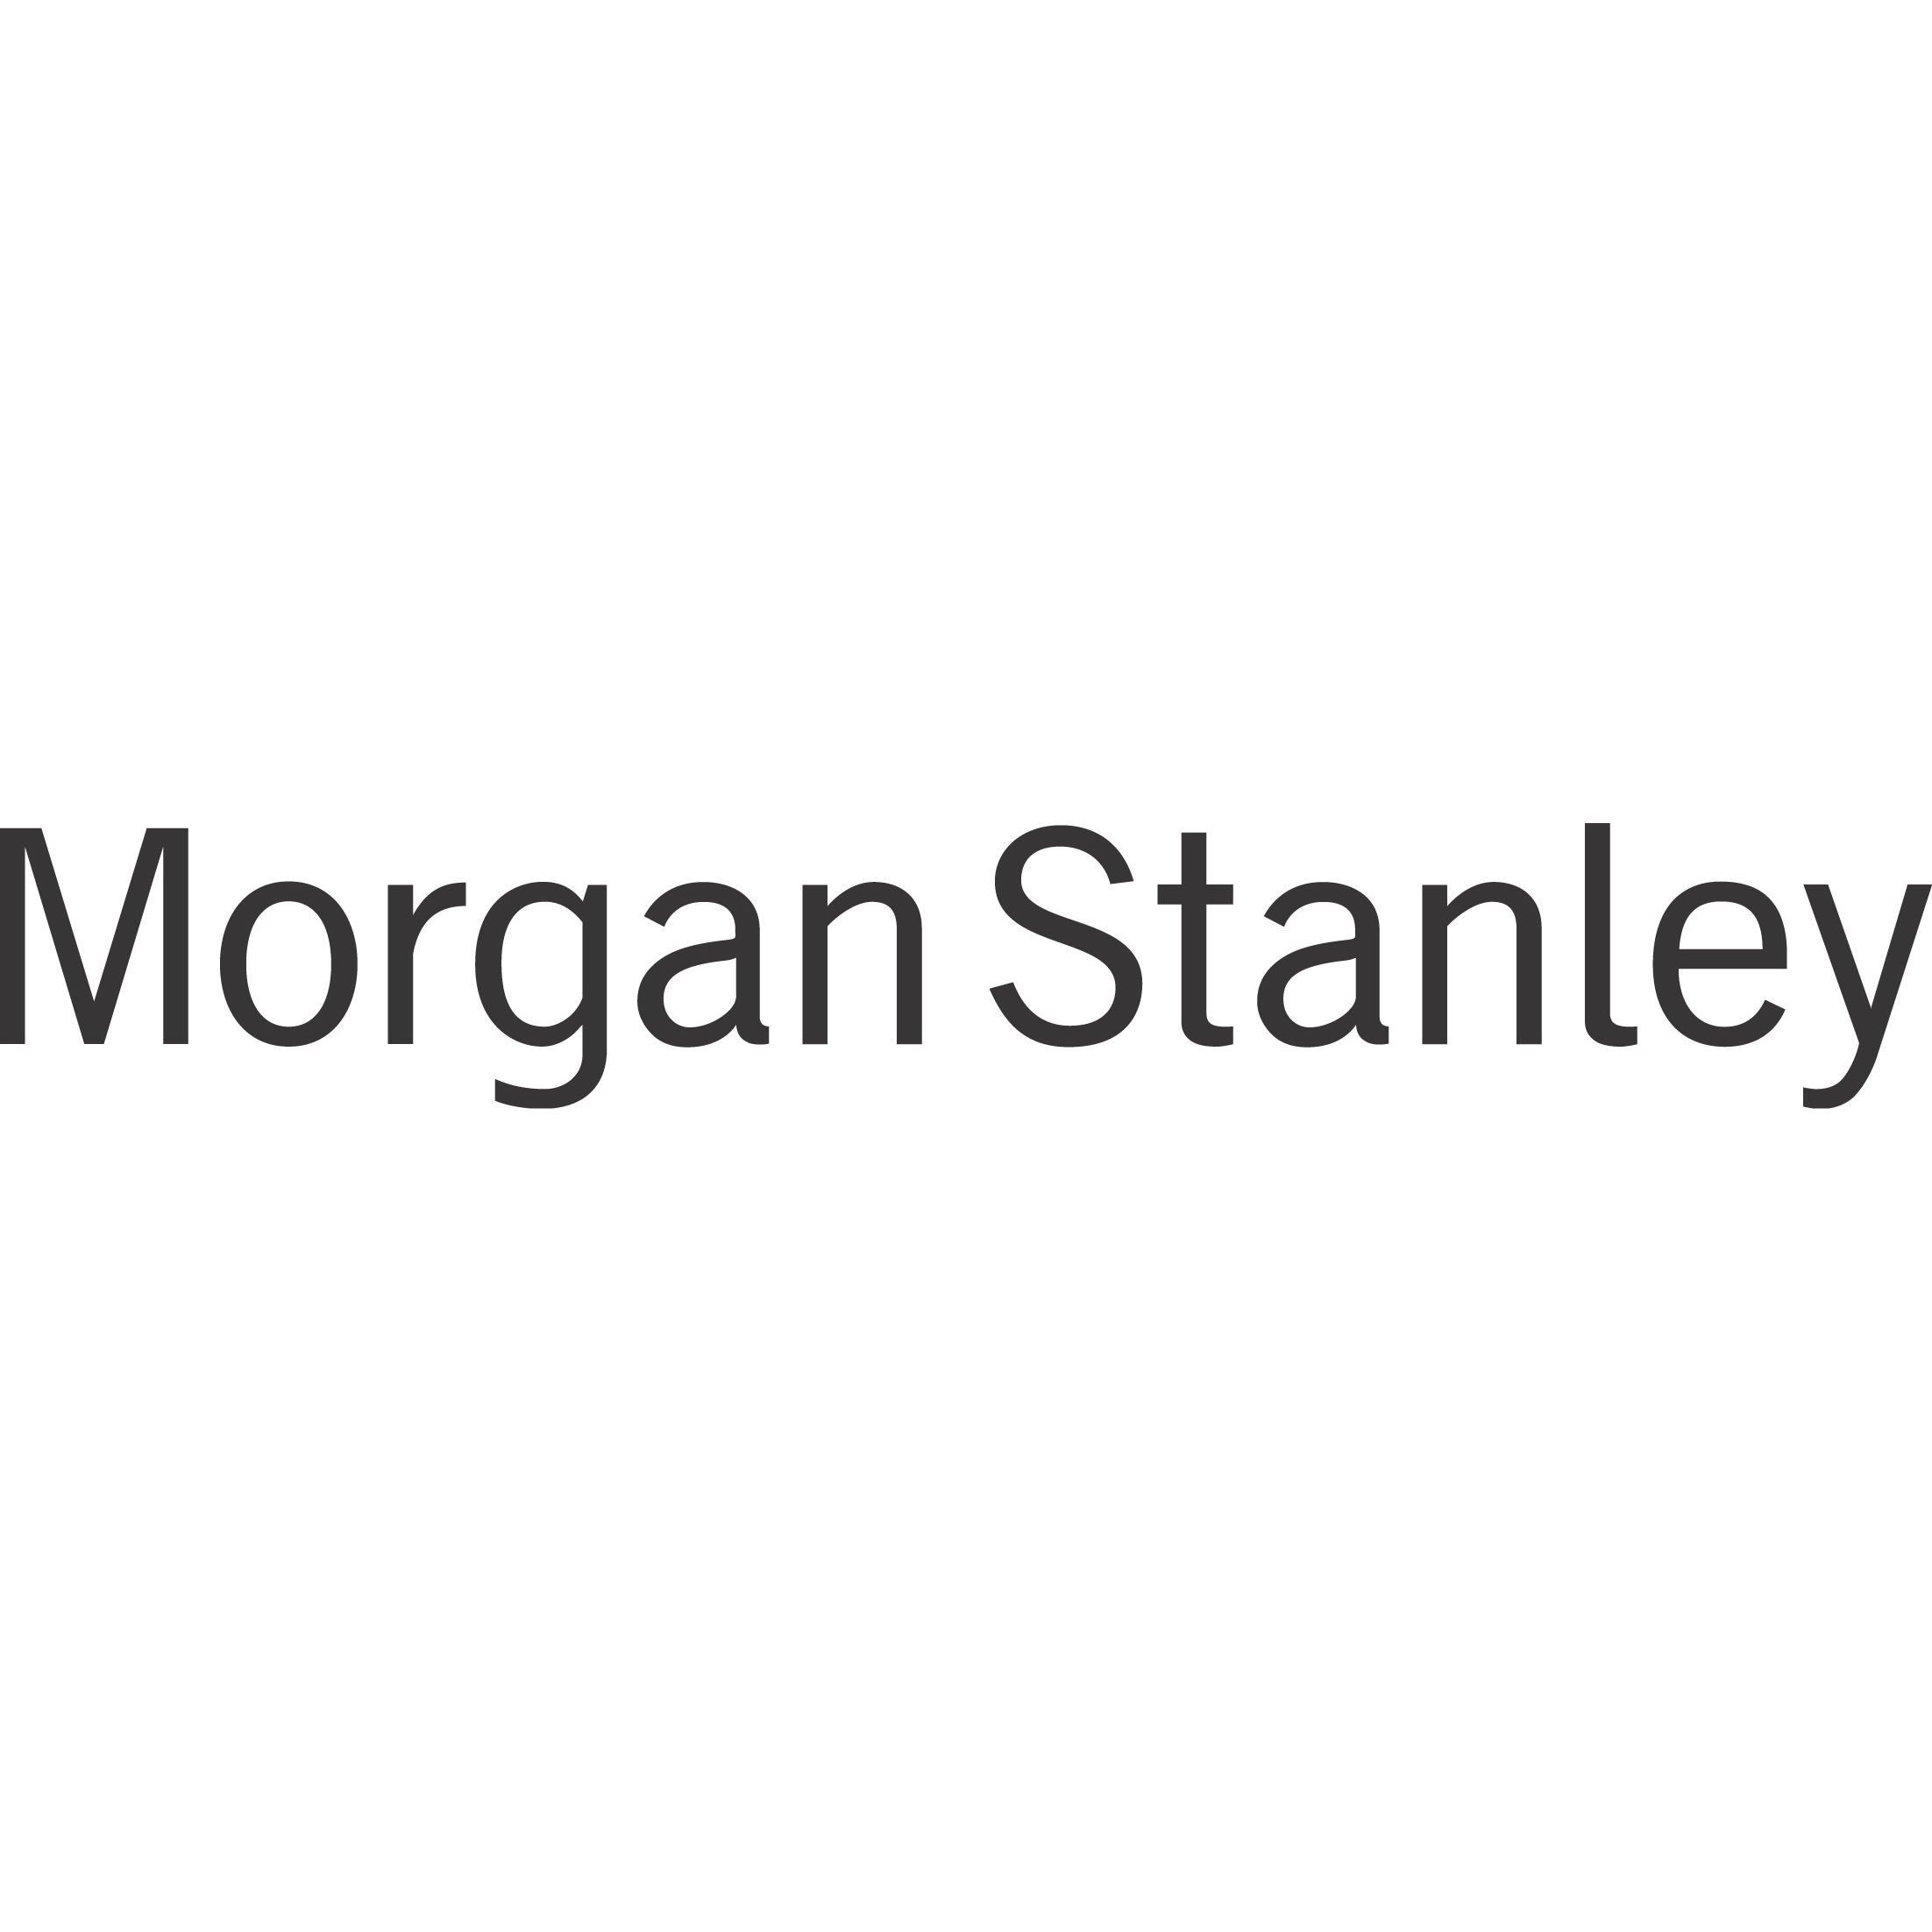 Glen Mondero - Morgan Stanley | Financial Advisor in Carlsbad,California